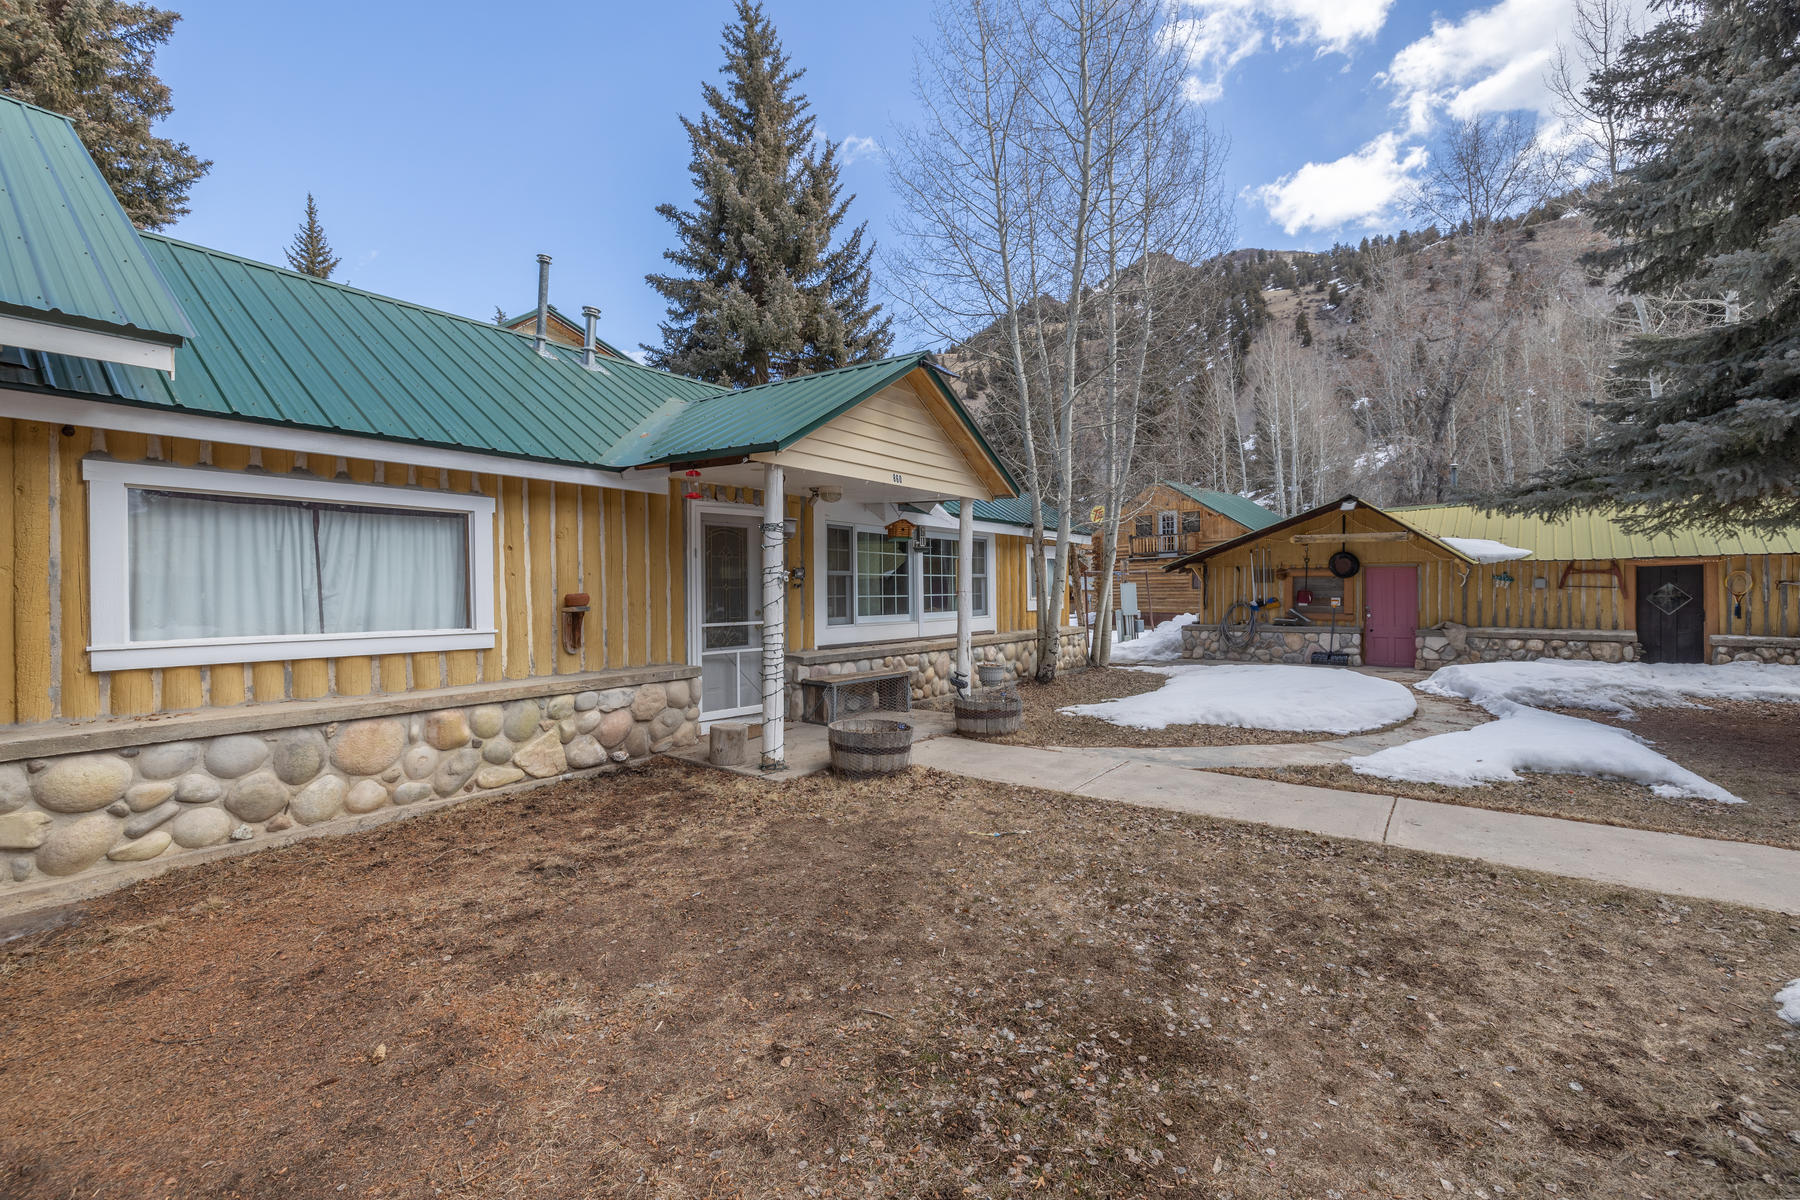 Single Family Homes for Active at Cute Home on Texan Resort Estate 860 Hinsdale County RD 142 #39 Lake City, Colorado 81235 United States